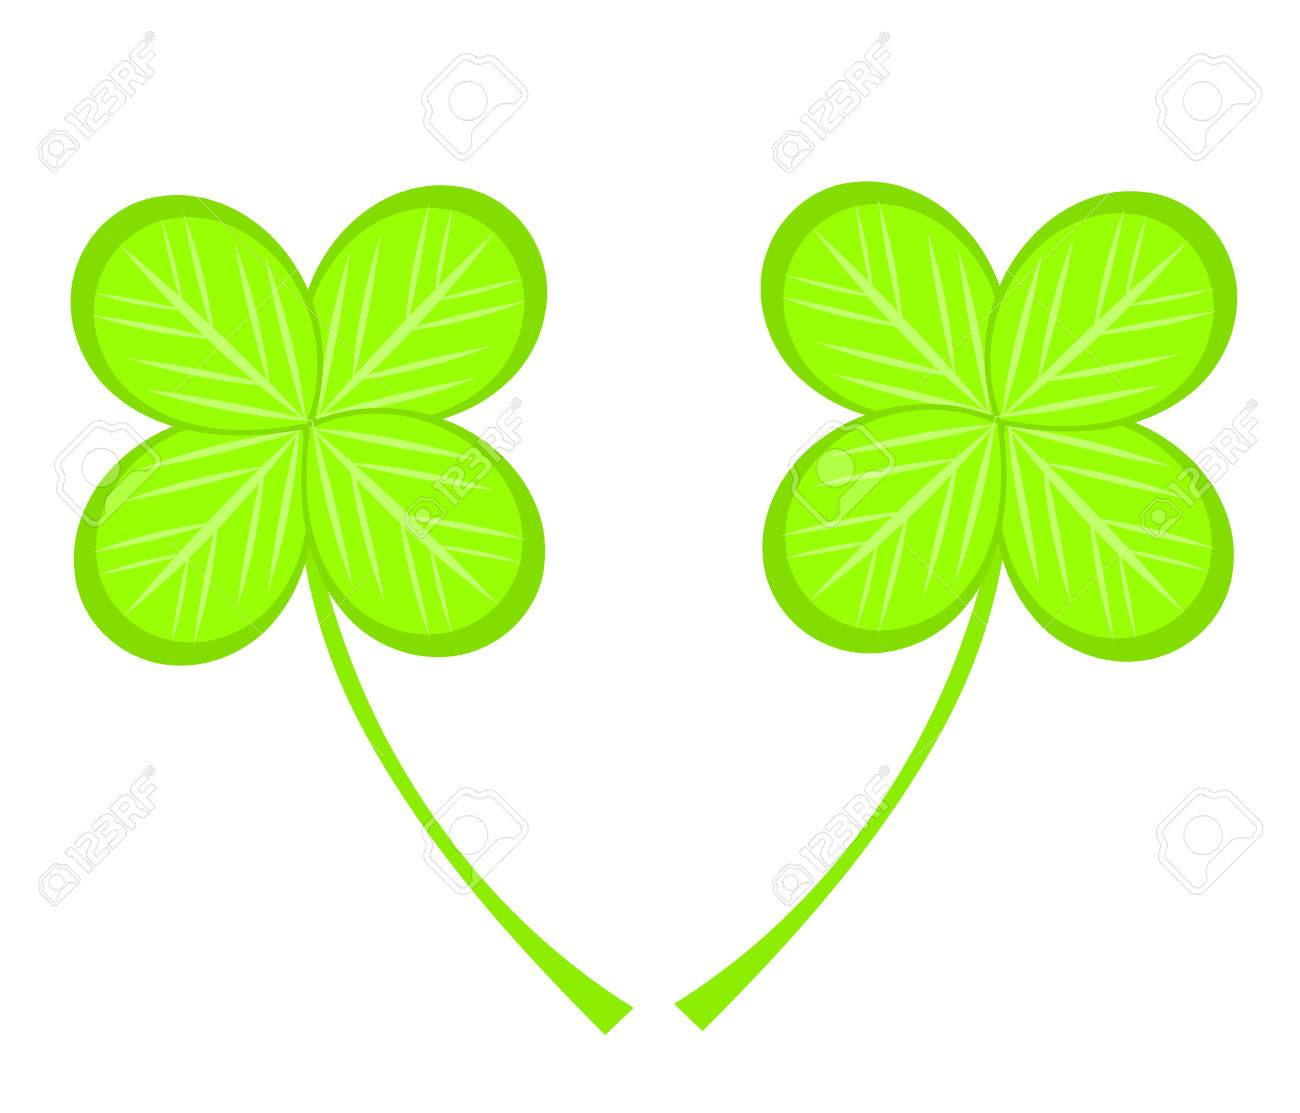 two four leaf clovers illustration royalty free cliparts vectors